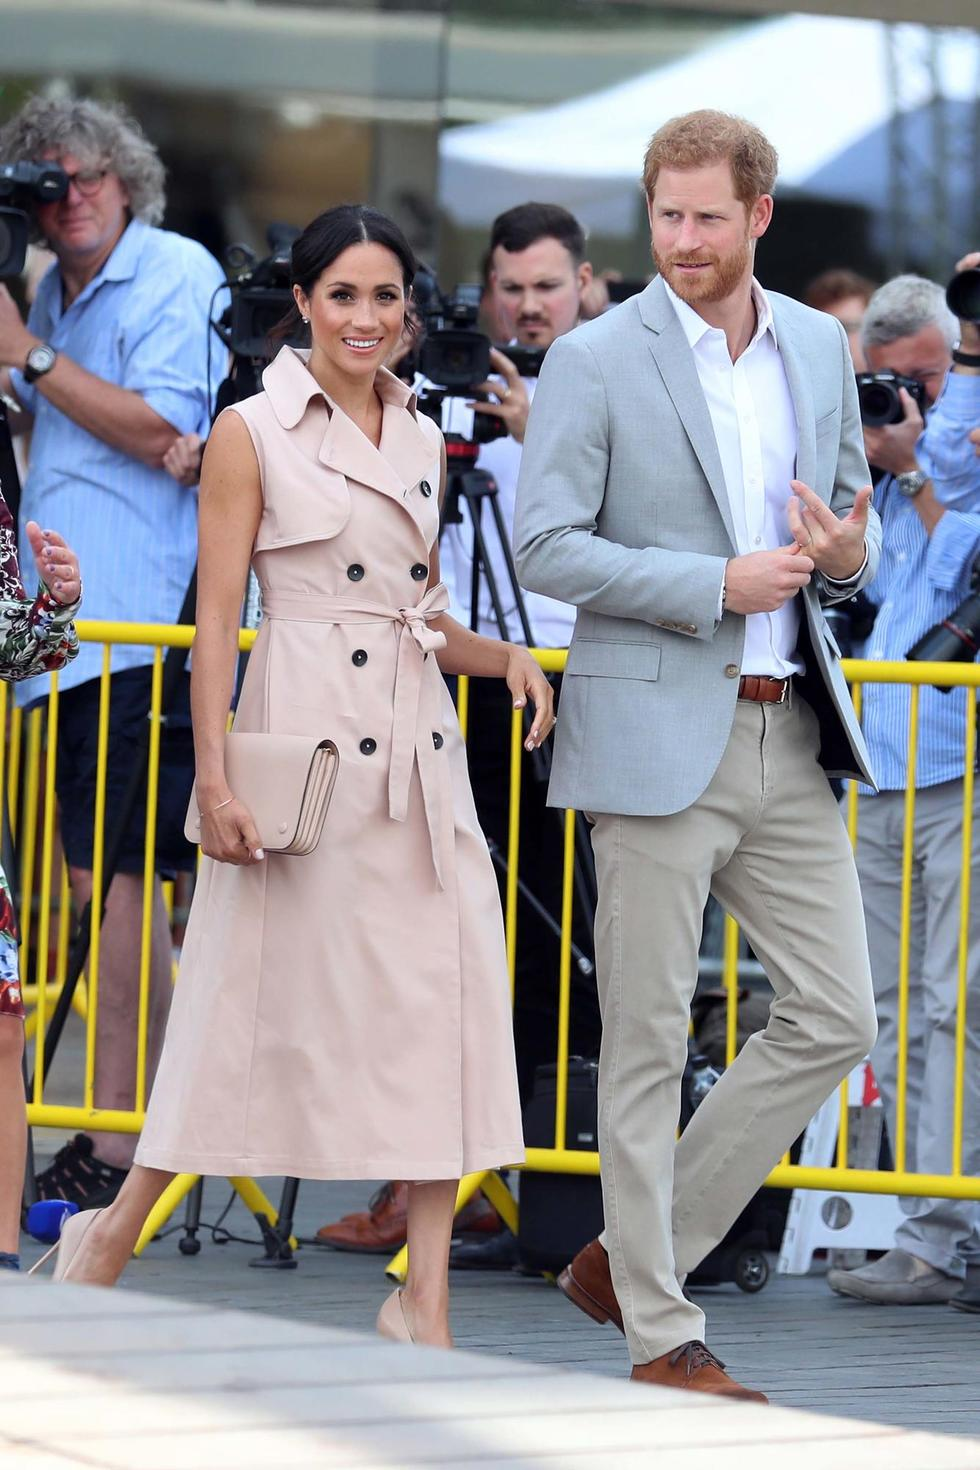 Modest Fashion, Queen Rania, Duchess of Sussex, Alicia Keys, Fashion Trends